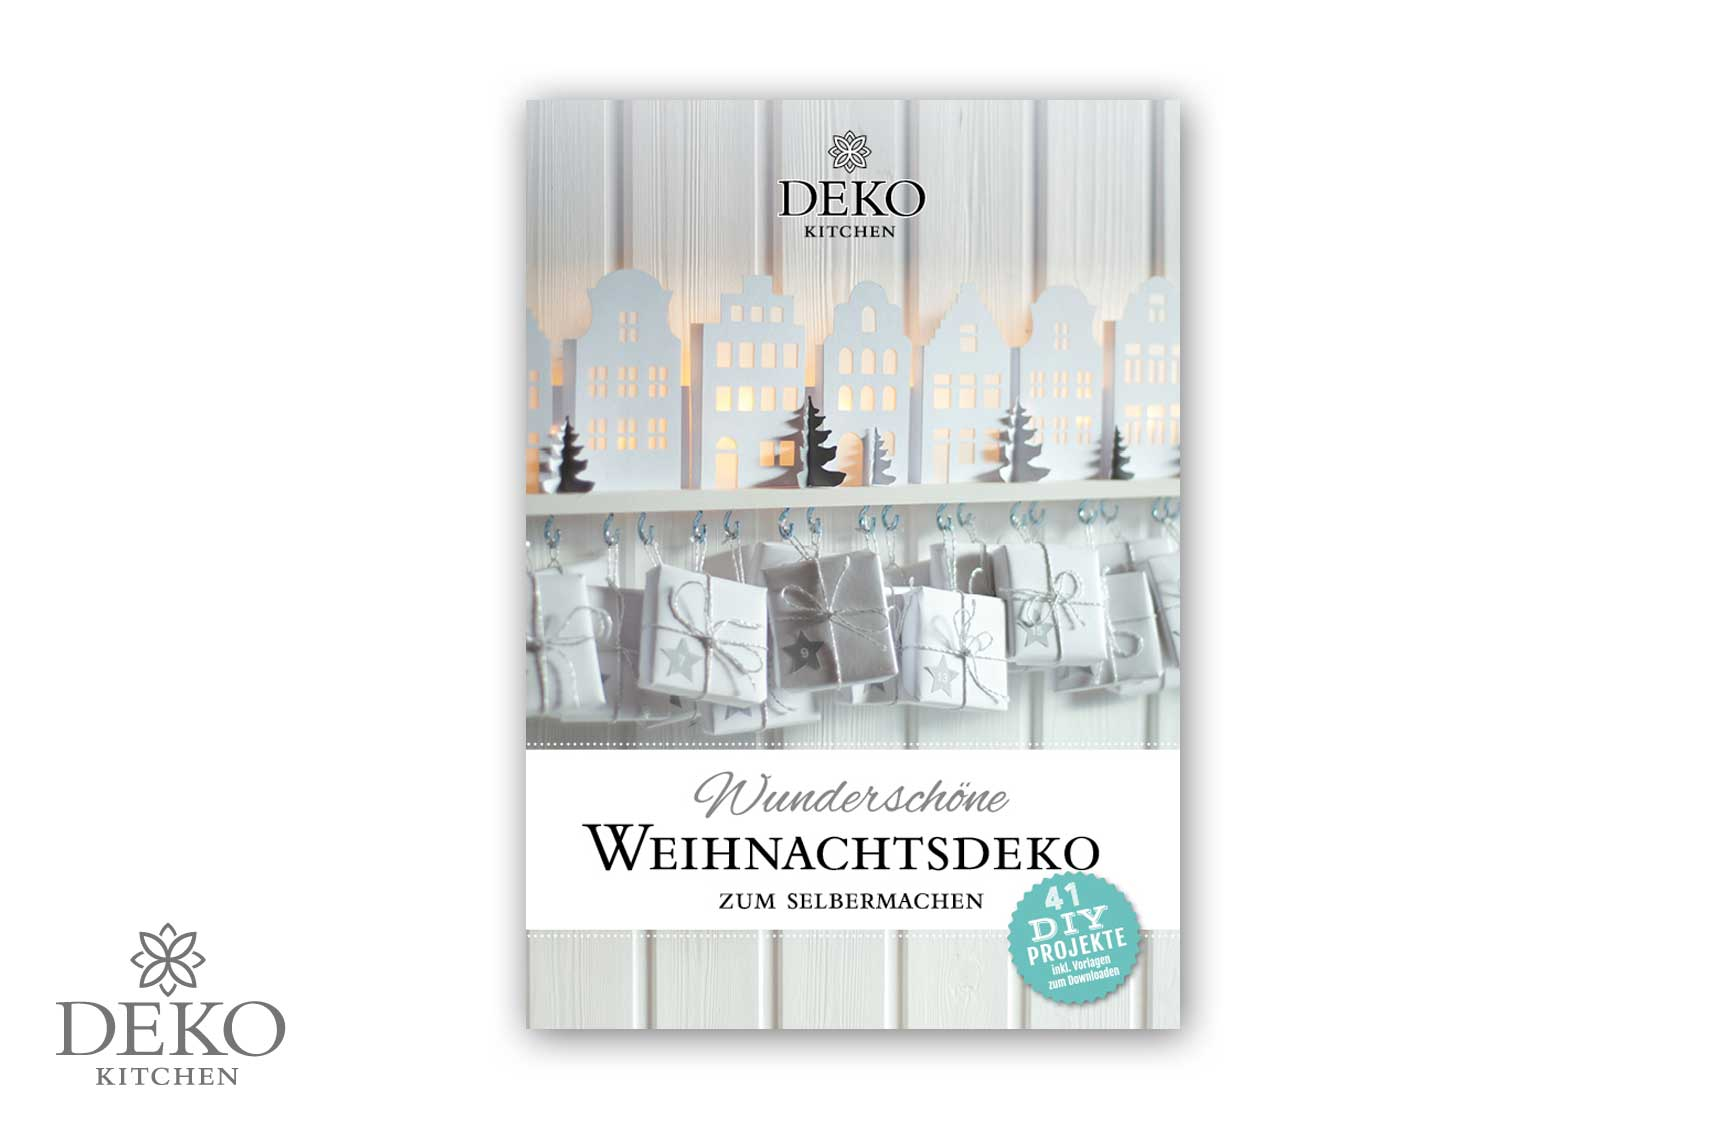 wundersch ne weihnachtsdeko zum selbermachen deko kitchen shop. Black Bedroom Furniture Sets. Home Design Ideas